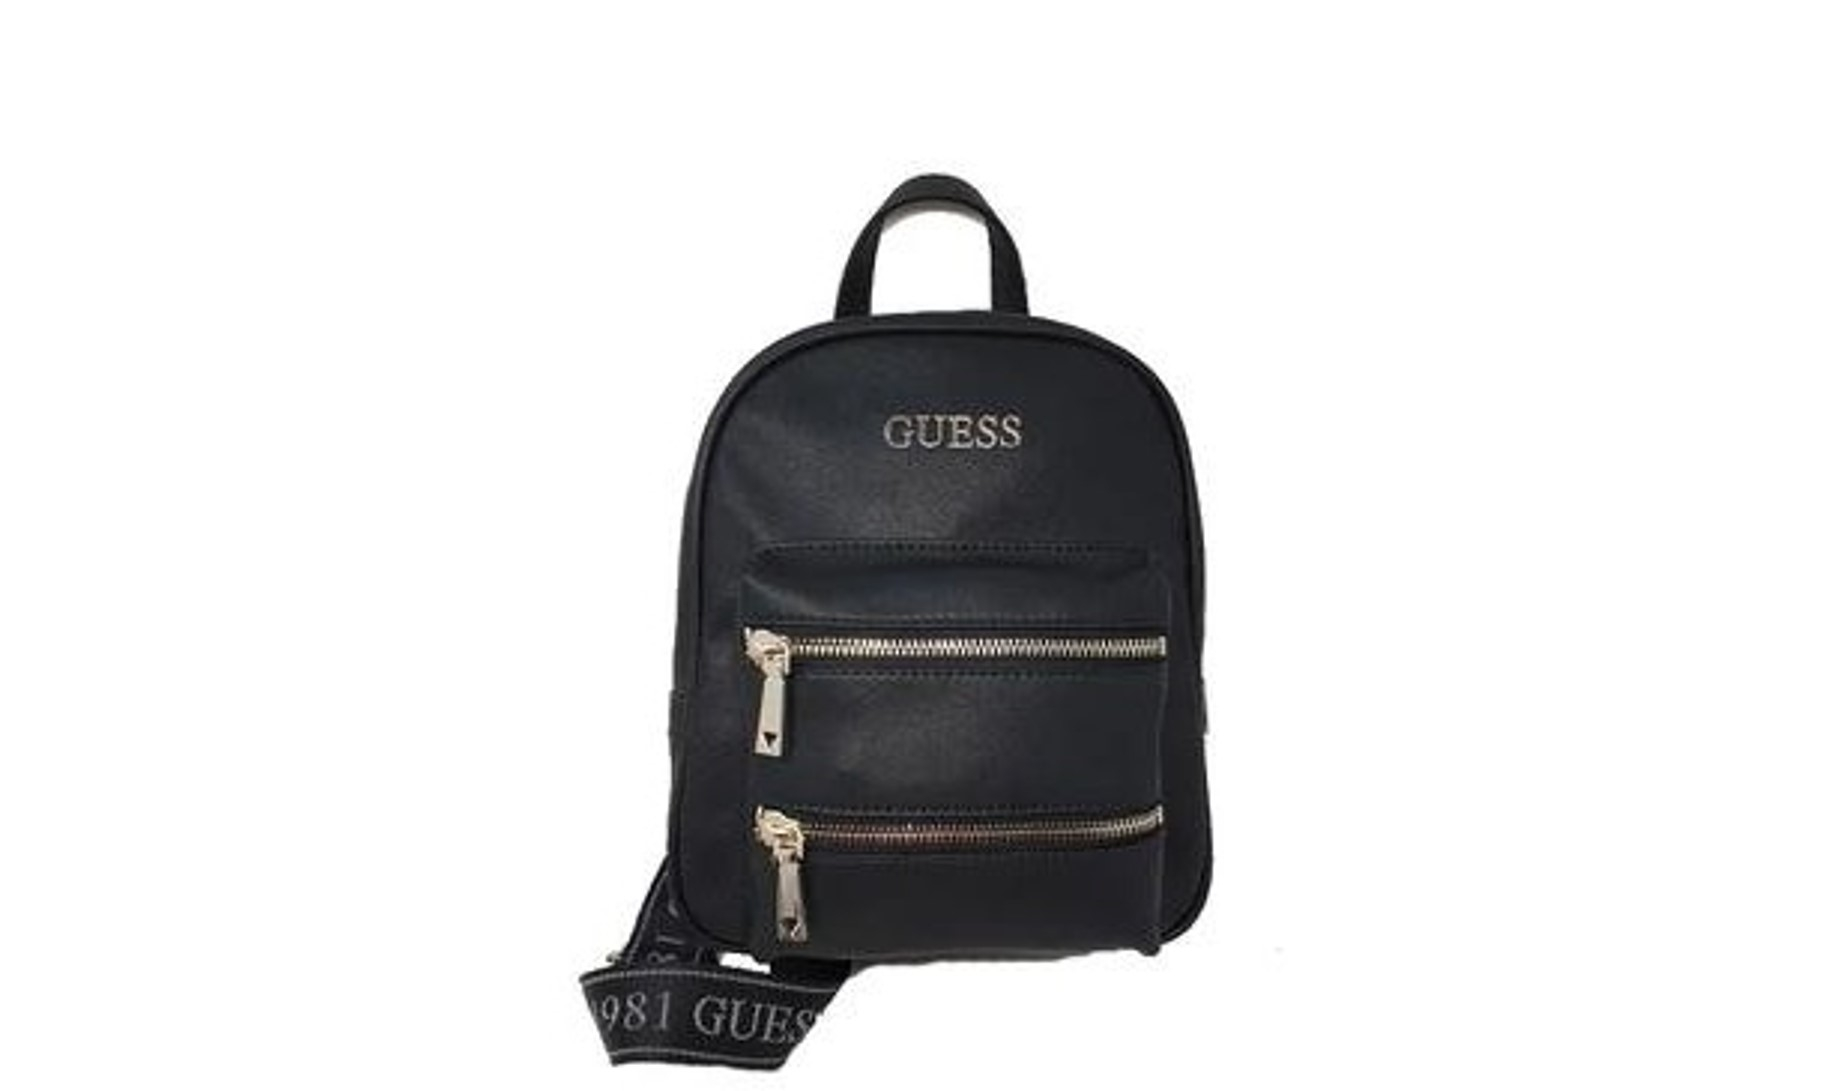 Sac à dos Guess neuf nouvelle collection